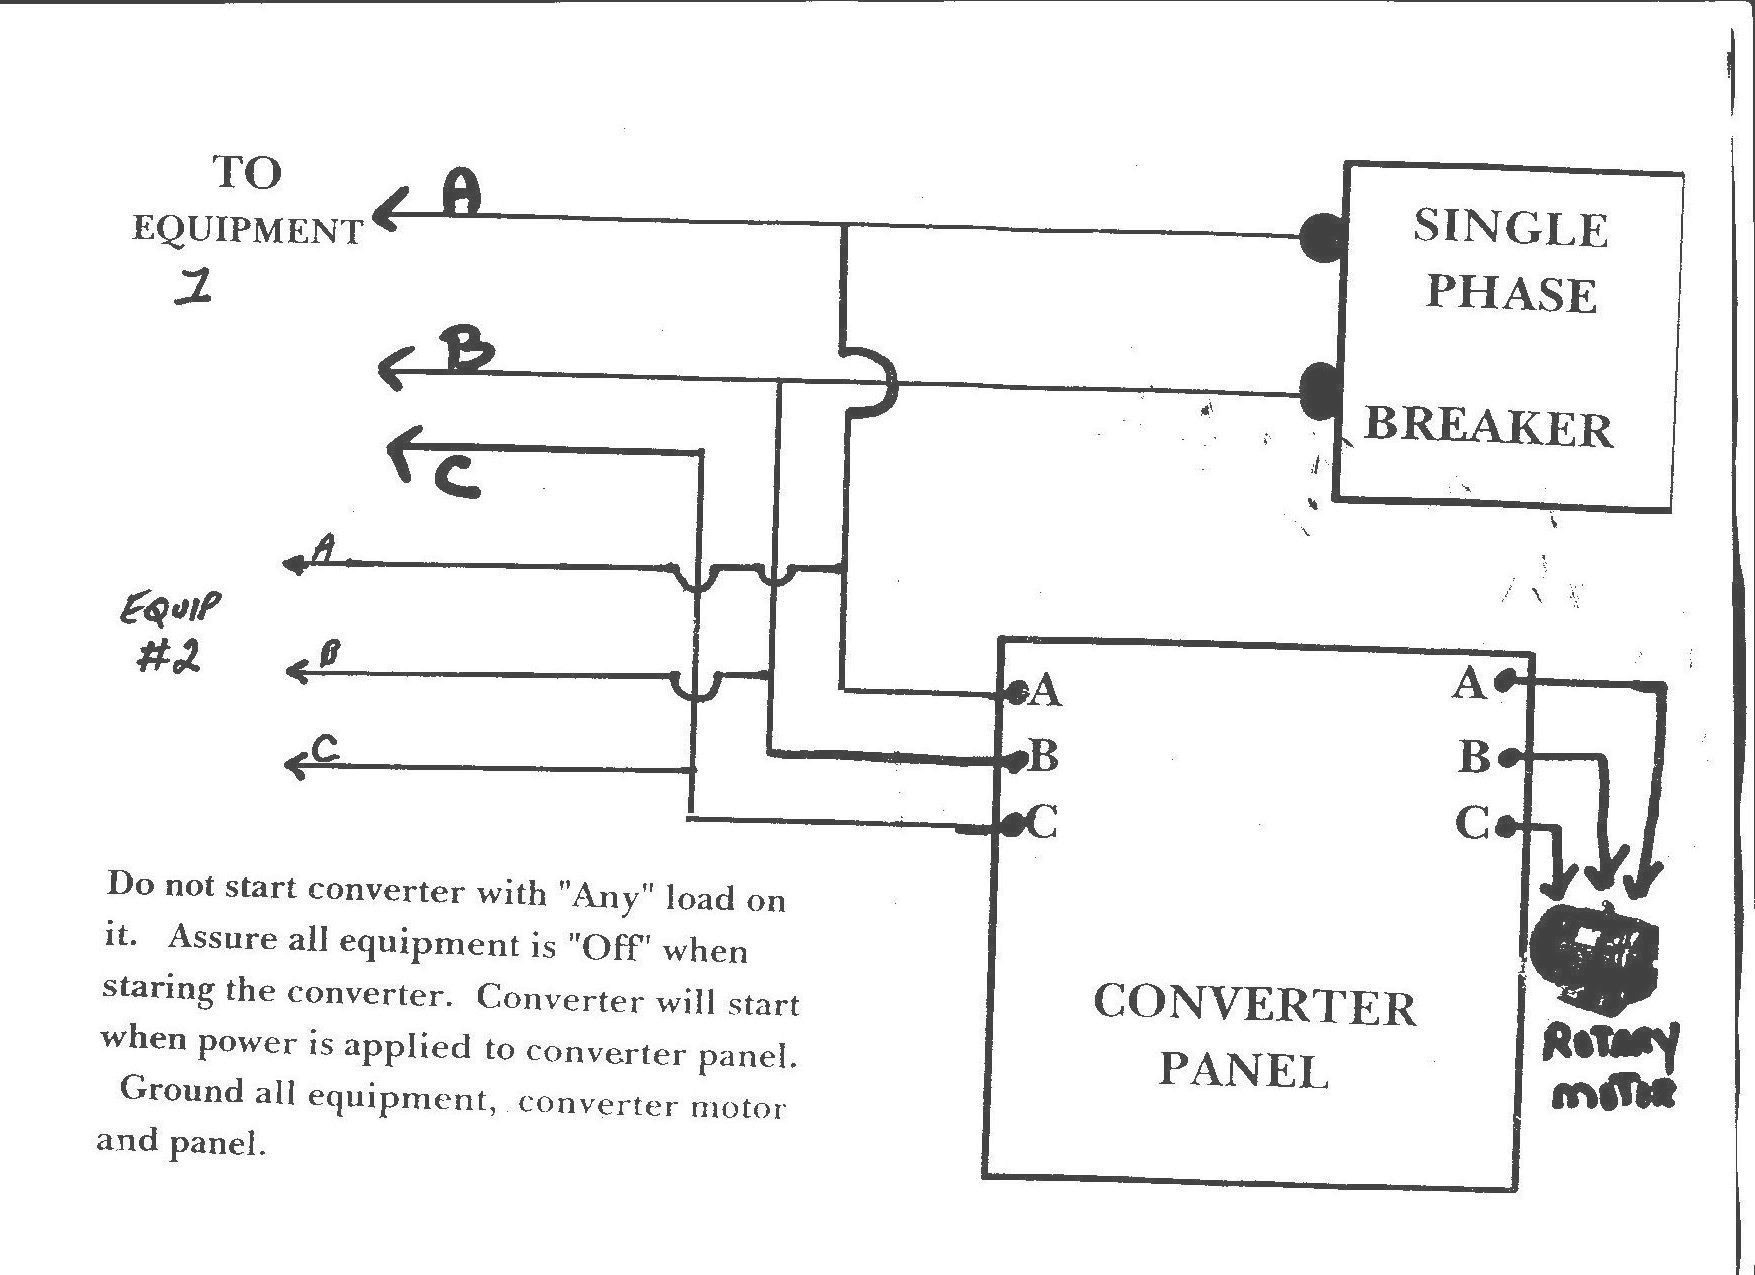 rotary phase converter wiring diagram ronk wiring diagram e2 wiring diagram diy rotary phase converter wiring diagram ronk wiring diagram e2 wiring diagram